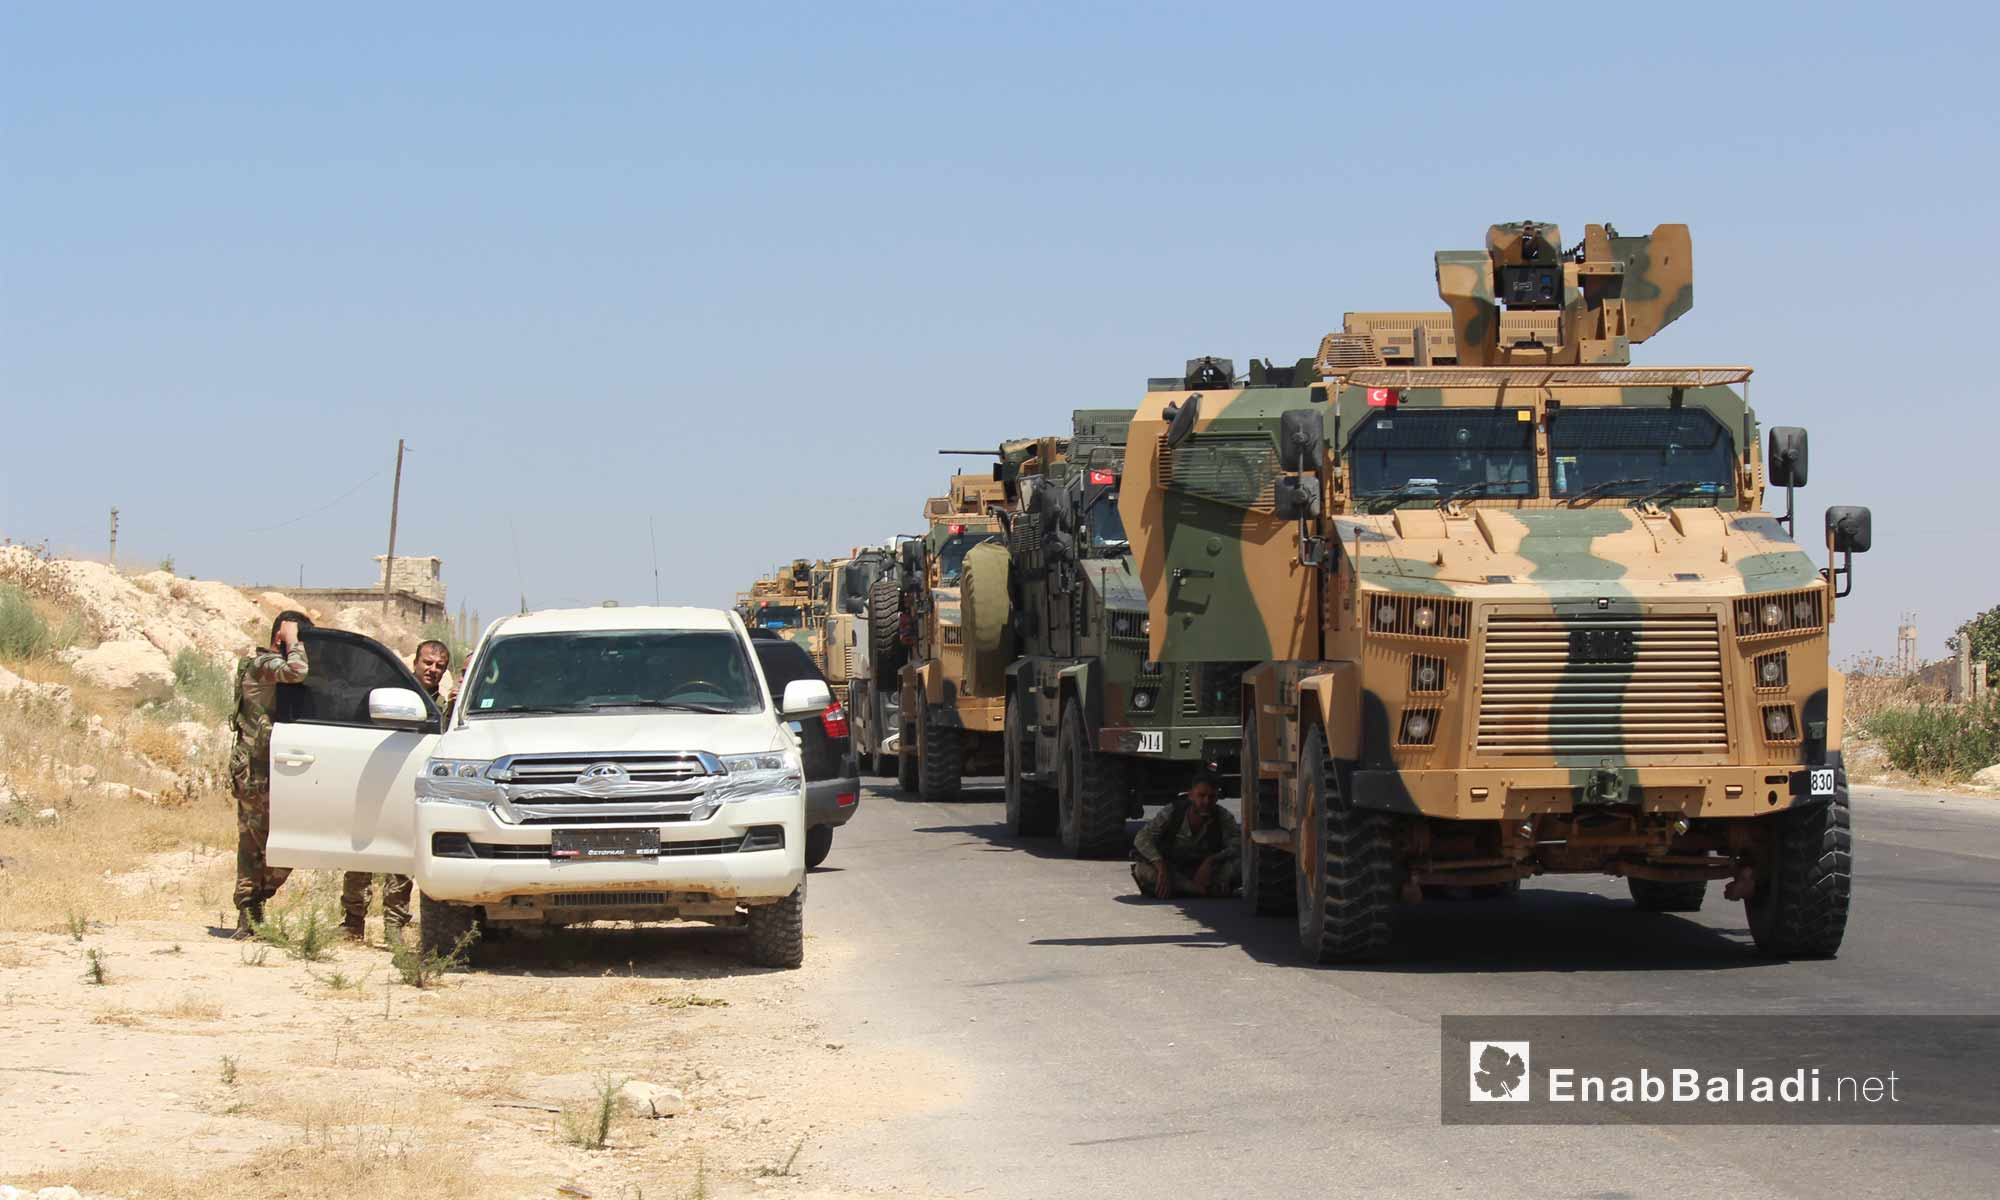 A convoy of the Turkish Armed Forces was forced to stop near the village of Maʿar Hatat, south of Maarat al-Numan in the province of Idlib after being targeted by the Syrian regime forces - 19 August 2019 (Enab Baladi)